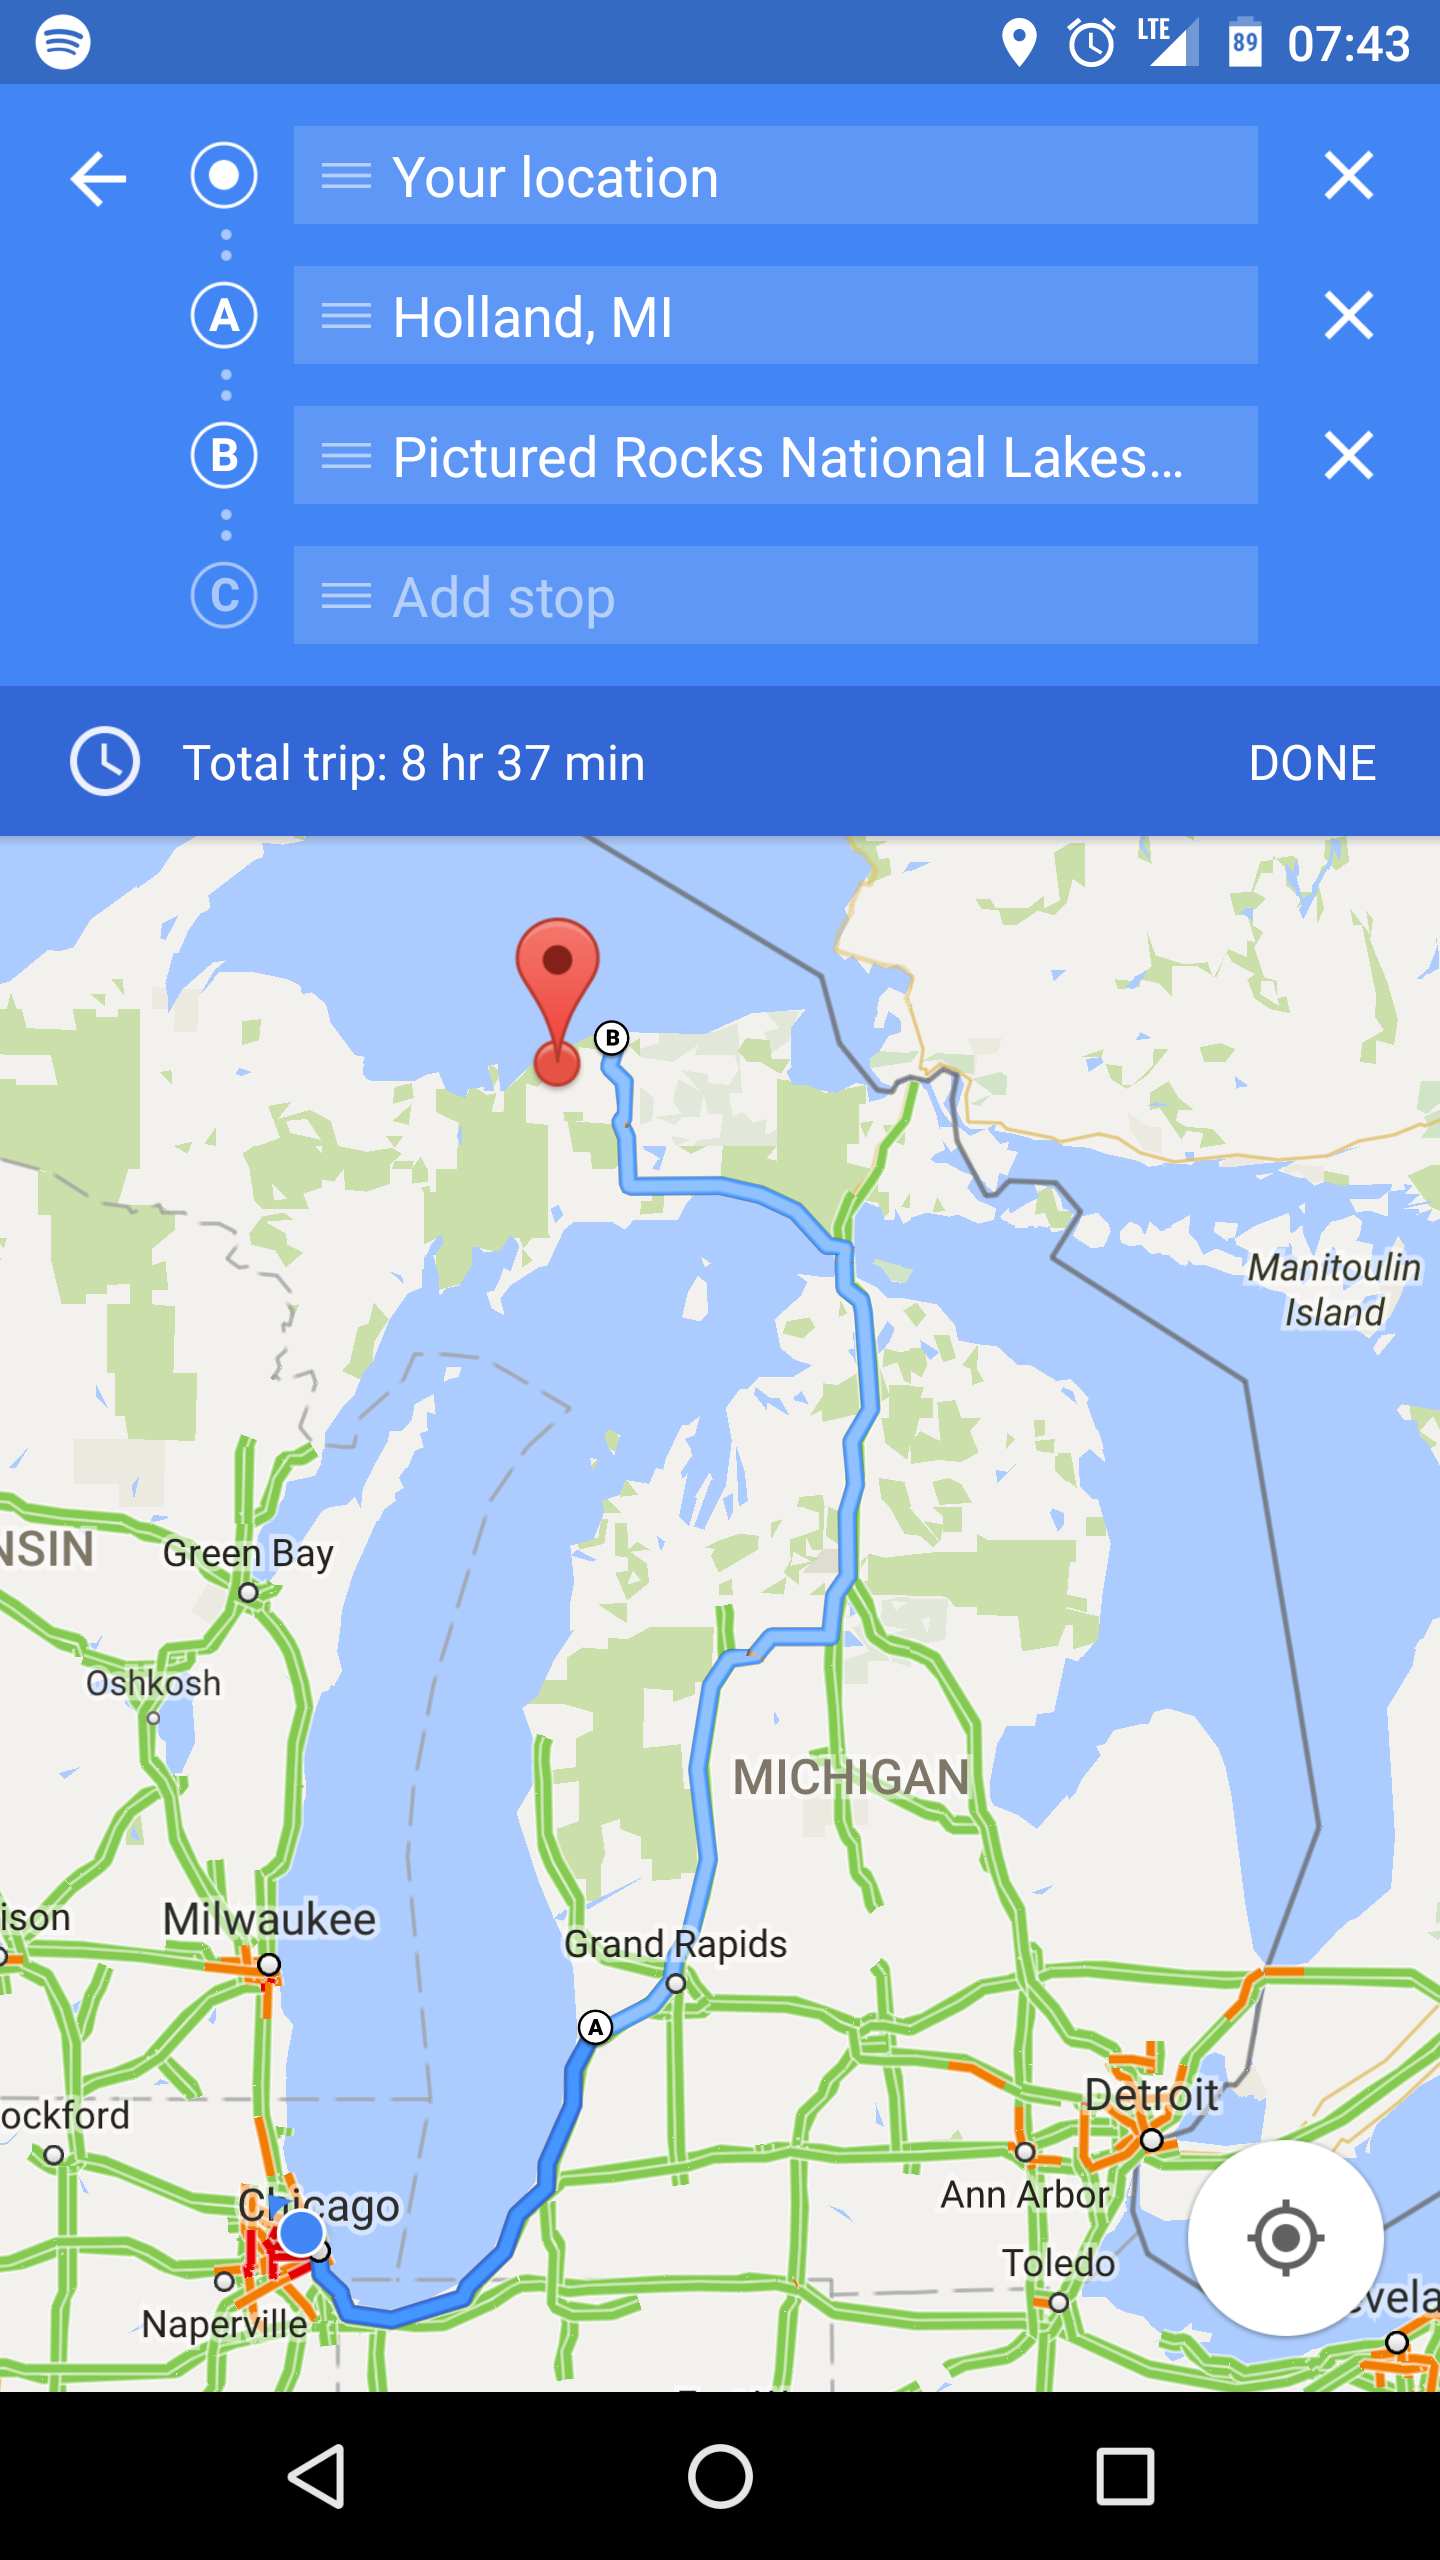 Google Maps for Android is finally rolling out multi ... on big bear lake map google, waco map google, new haven map google, san luis obispo map google, bakersfield map google, downtown detroit map google, baton rouge map google, coeur d'alene map google, knoxville map google, honolulu map google, port huron map google, killeen map google, shreveport map google, tulsa map google, state college pa map google, jacksonville map google, pasadena map google, lexington map google, beaverton map google, oakland map google,